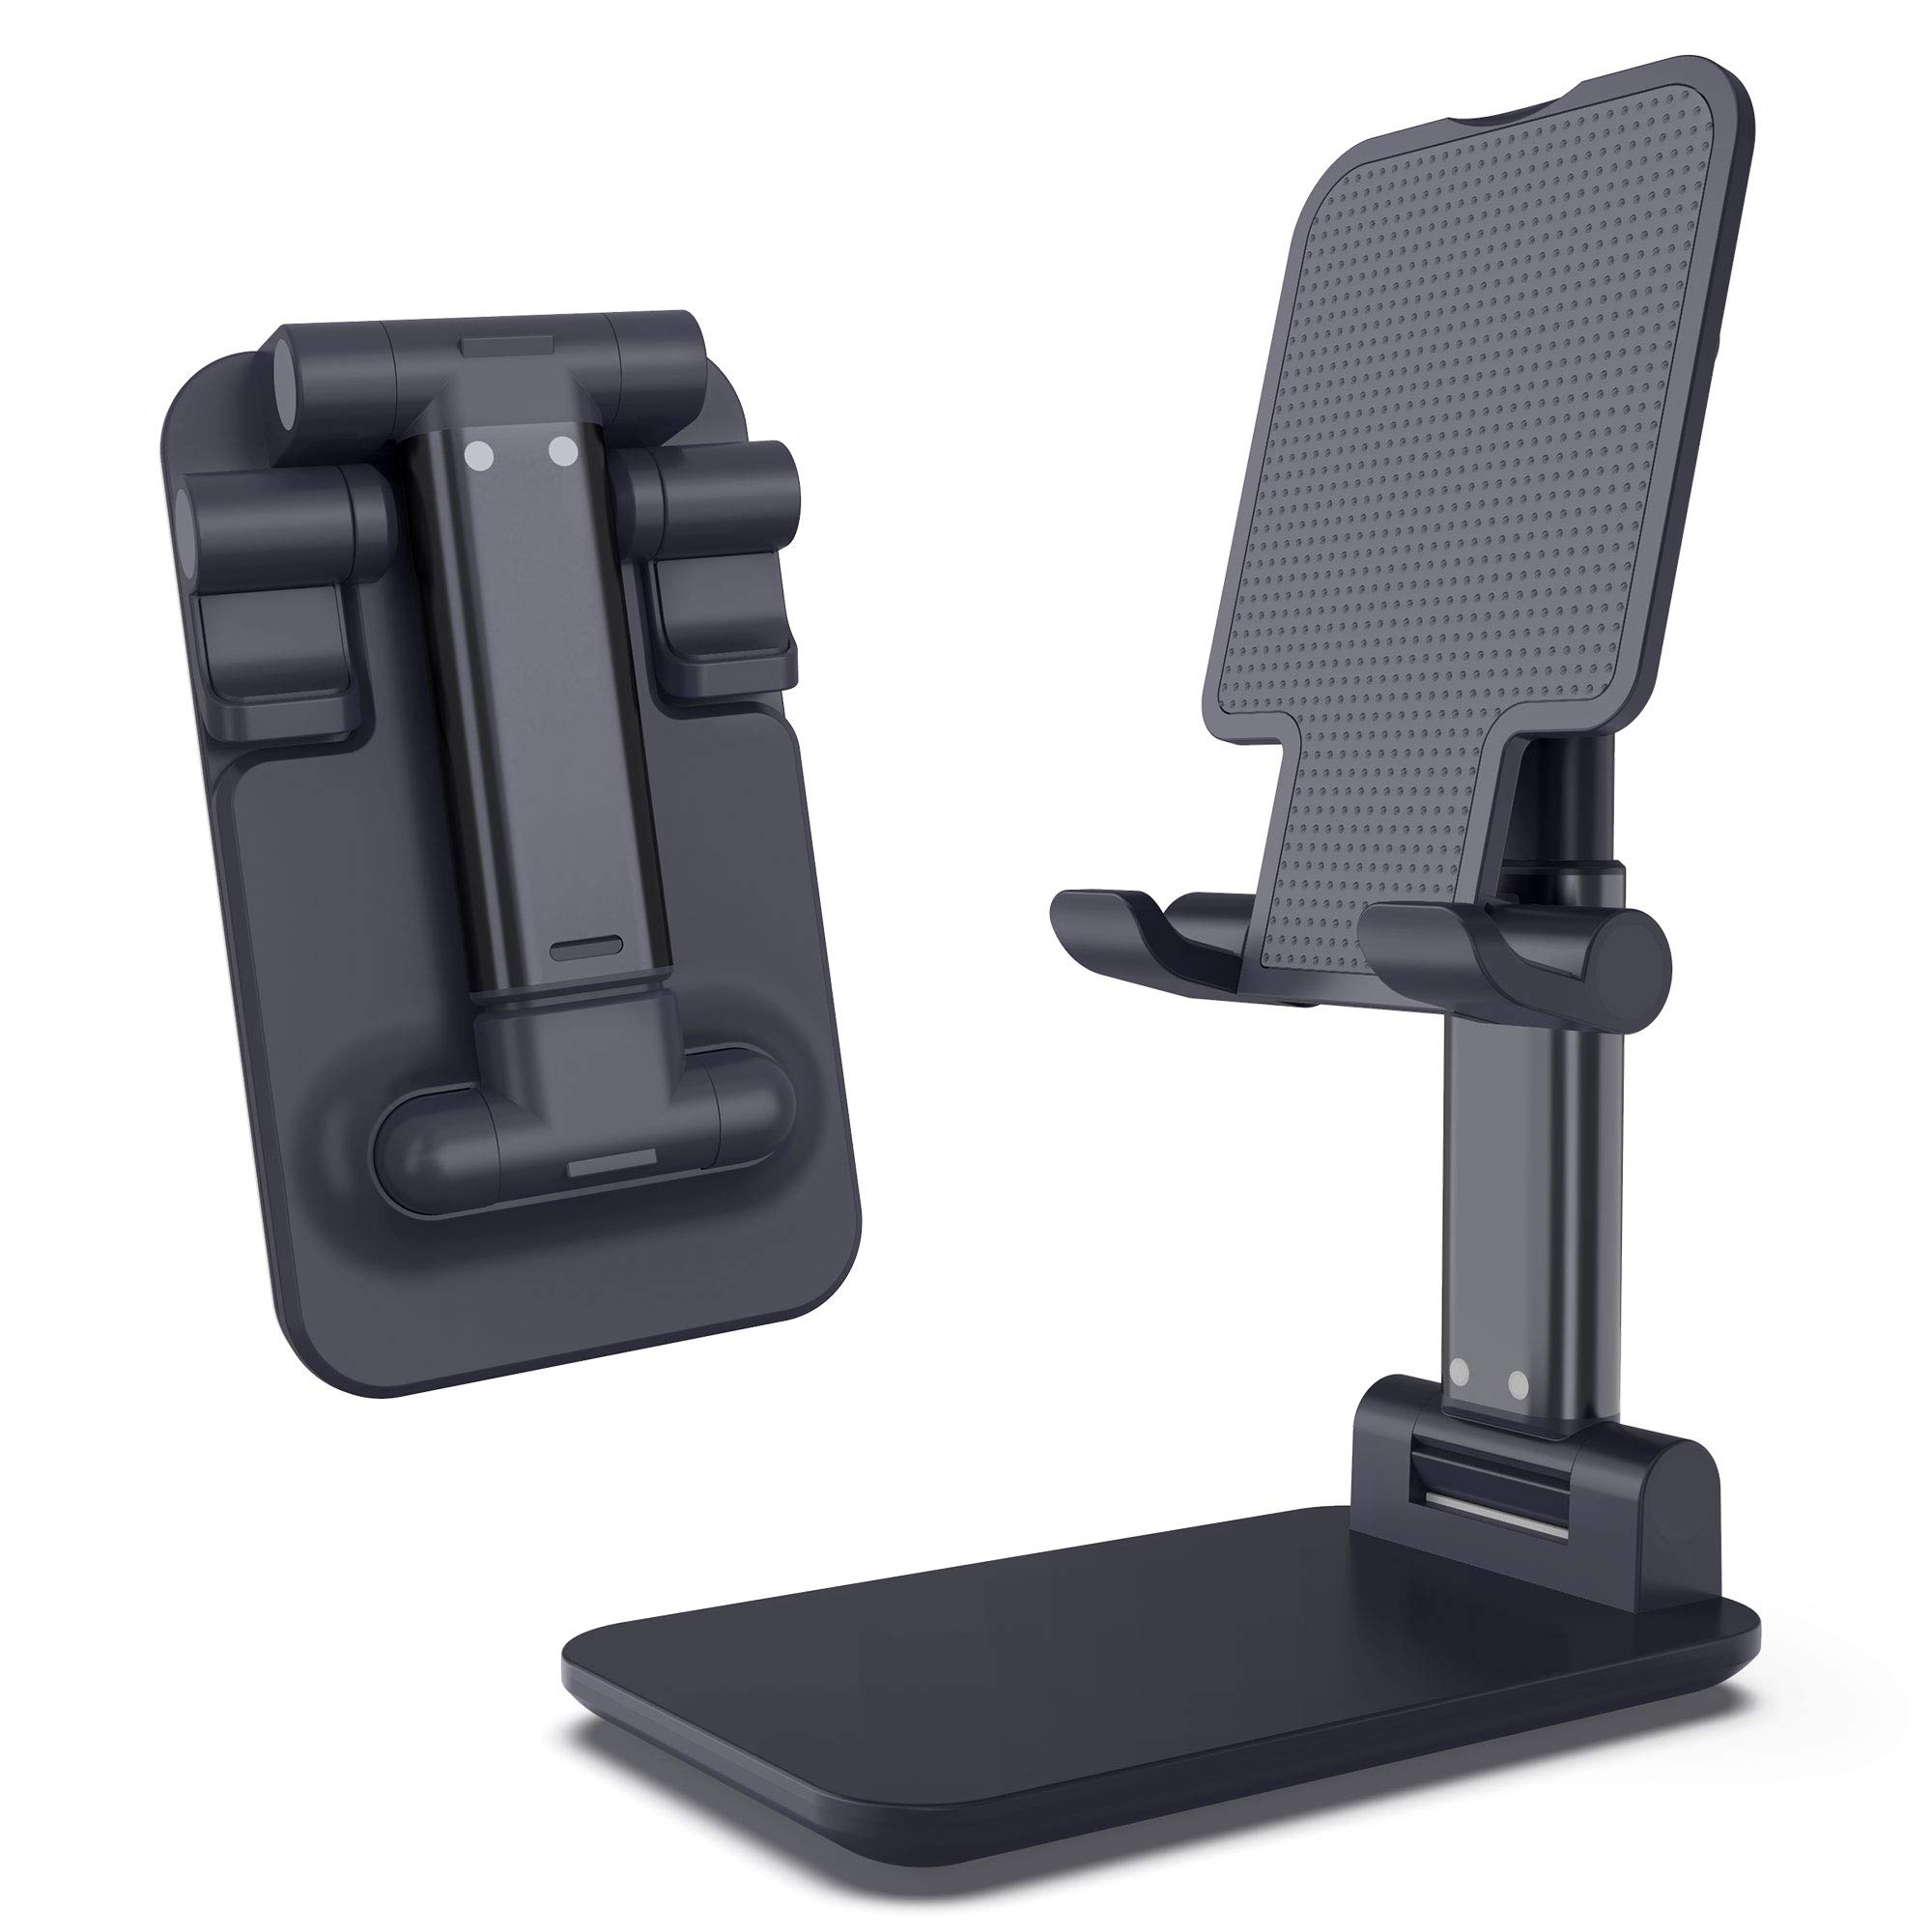 Imguardz Cell Phone Stand, Adjustable Desktop Holder Cradle Dock, Premium Foldable Tablet Stands, Compatible with iPhone 11 Pro Xs Max Xr 8 Plus, iPad, Nintendo Switch, Smartphone (Black)